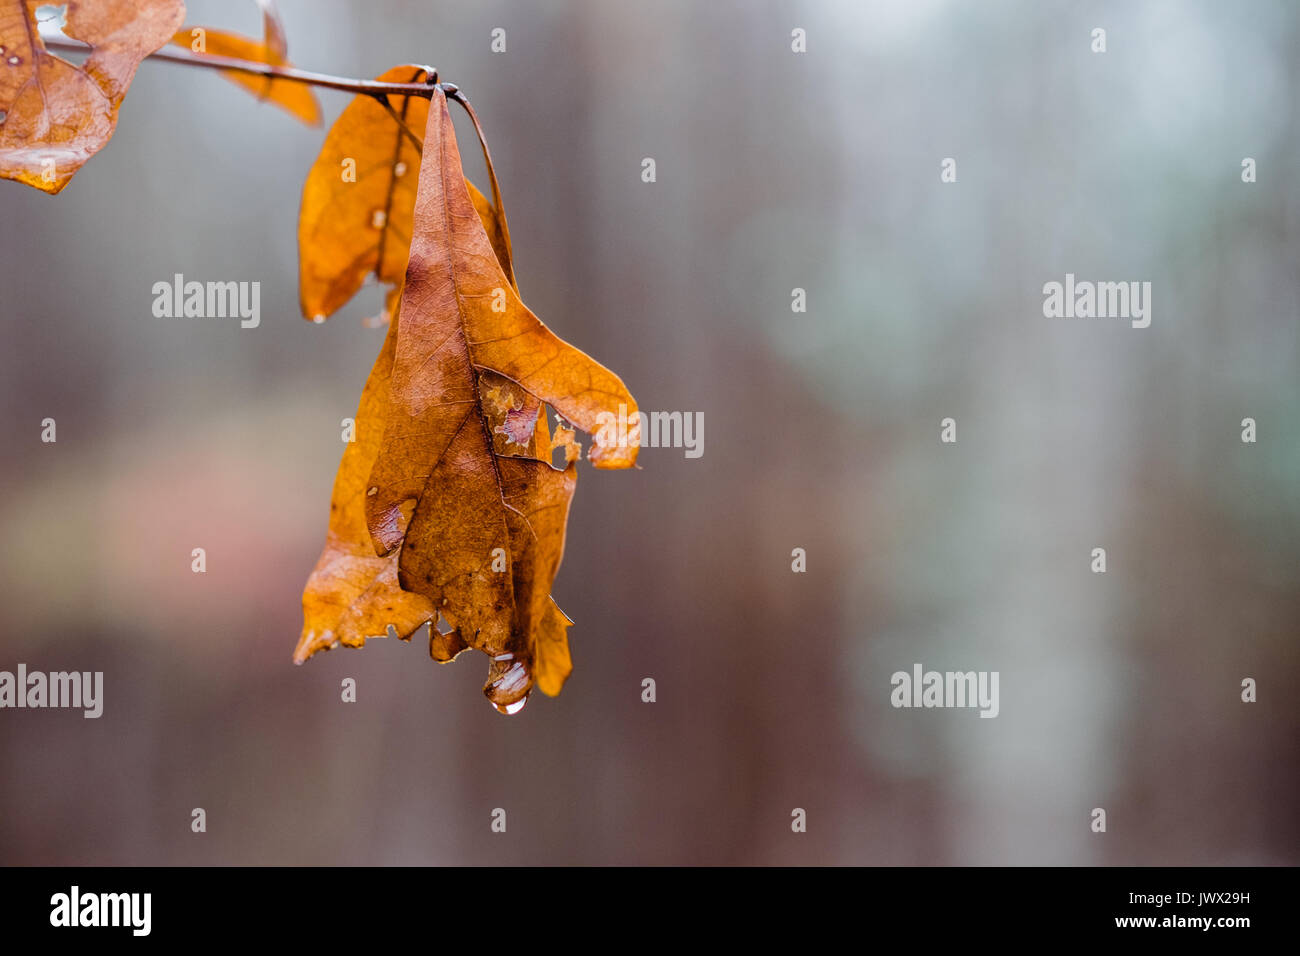 A hanging orange oak leaf with a single drop of water at the tip, after an autumn rain. The leaf is isolated in - Stock Image